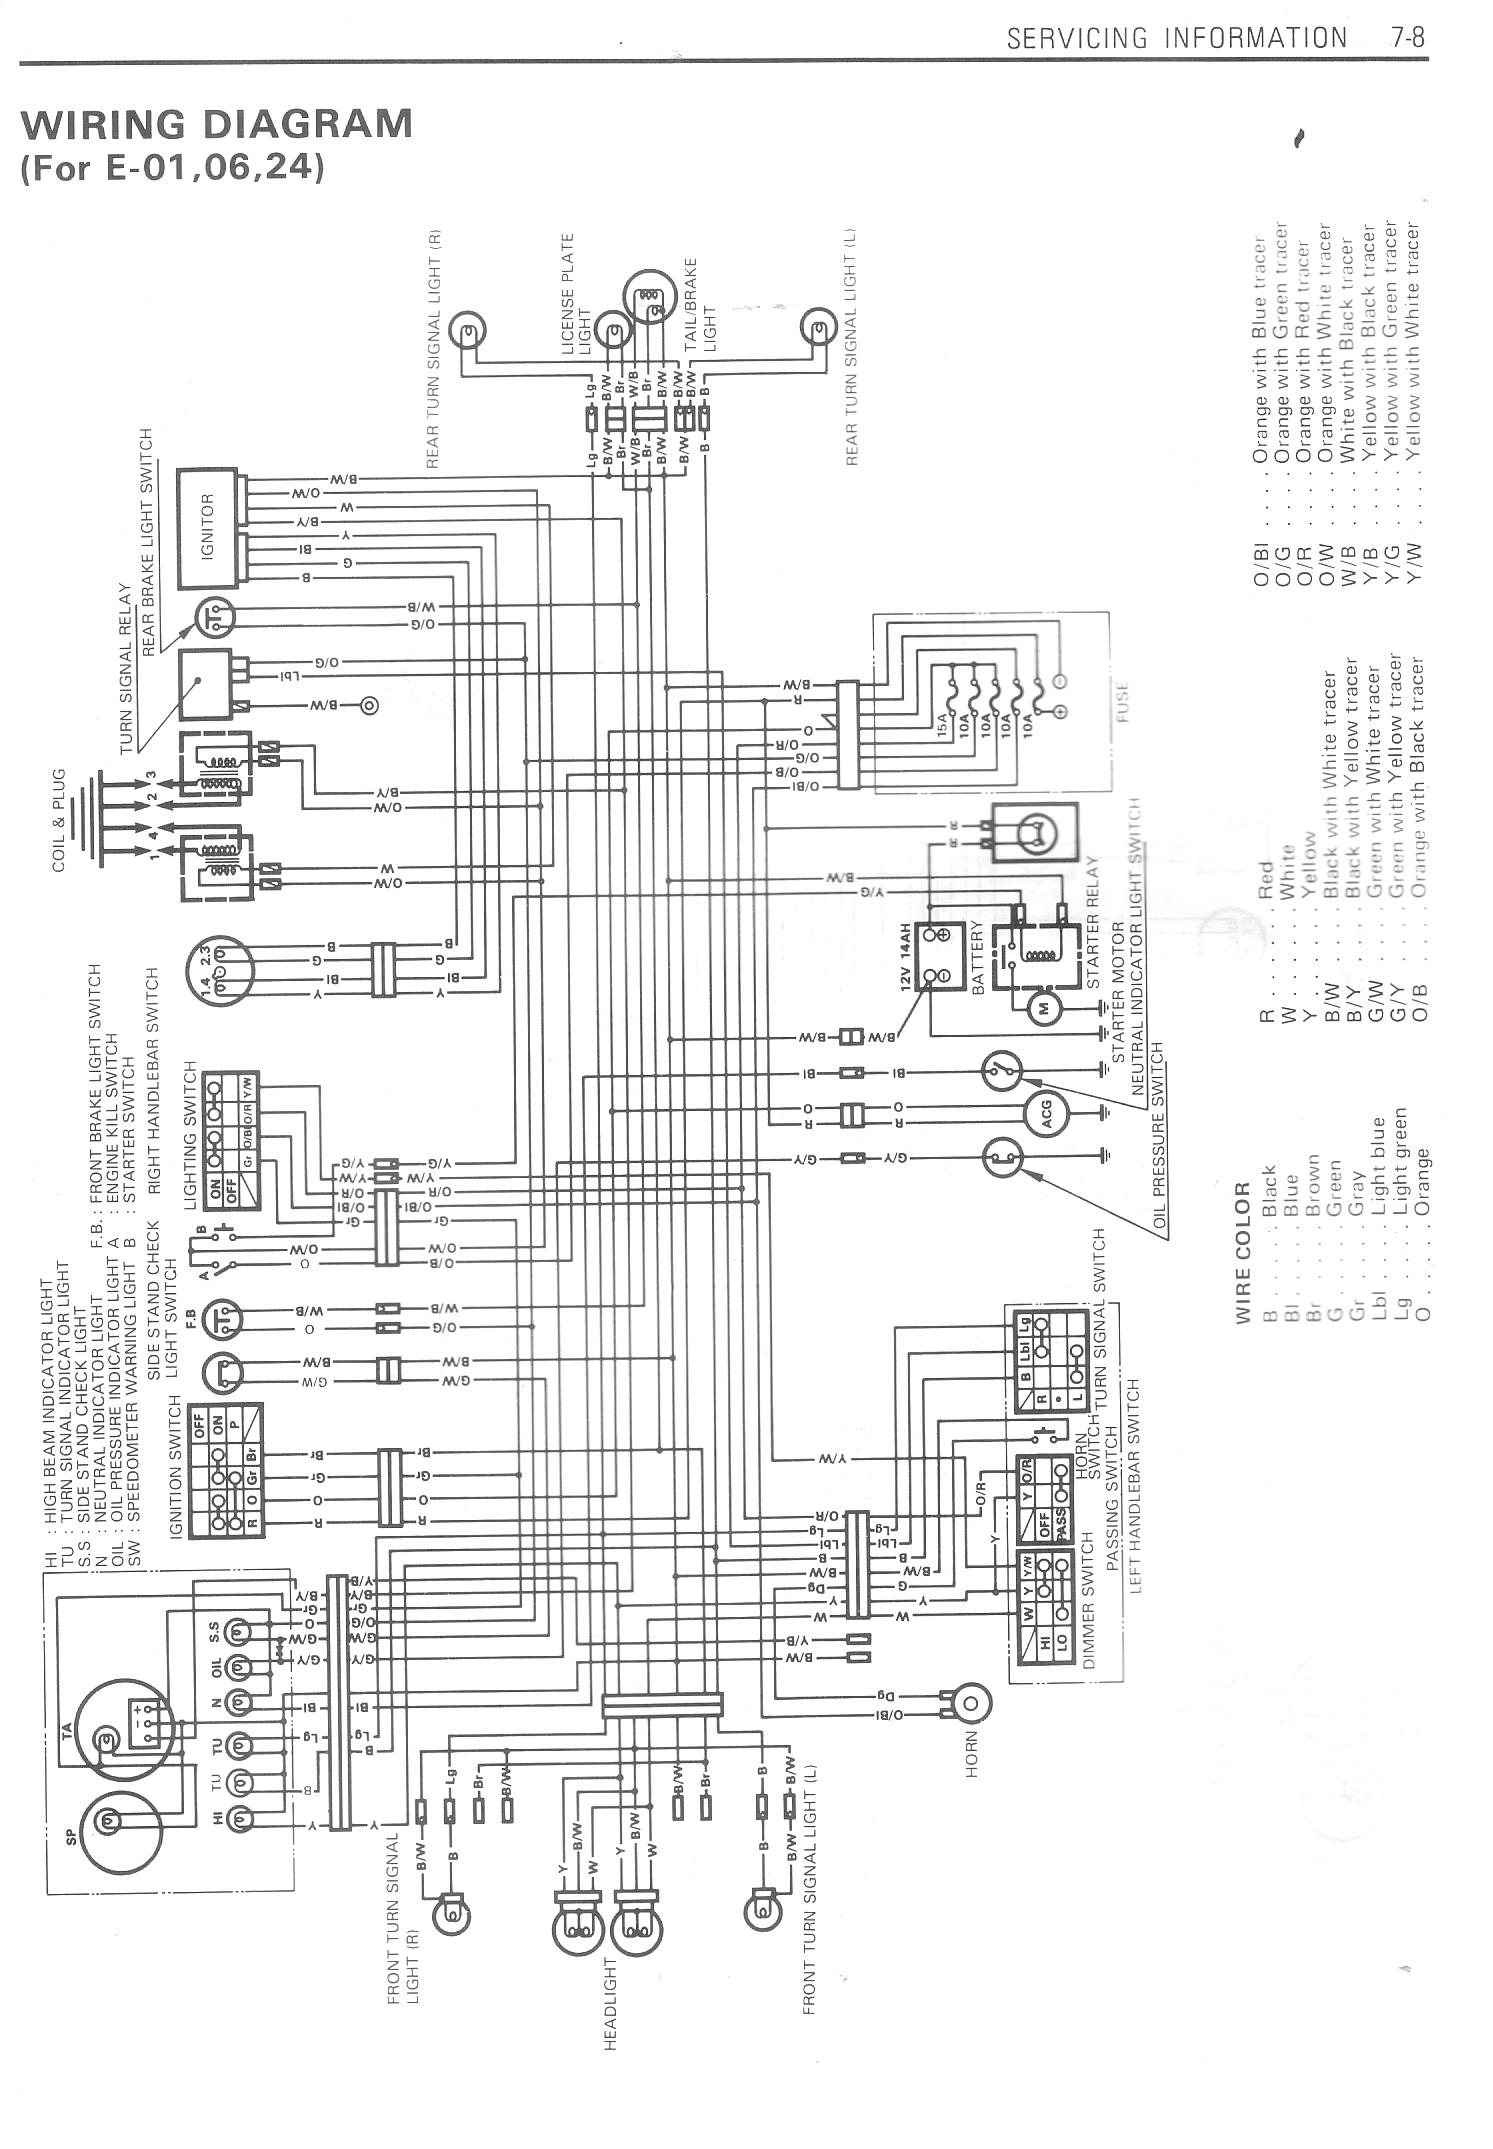 1999 suzuki gsxr 750 wiring diagram 3 way switch multiple lights y2k bike diagrams  gsx r motorcycle forums